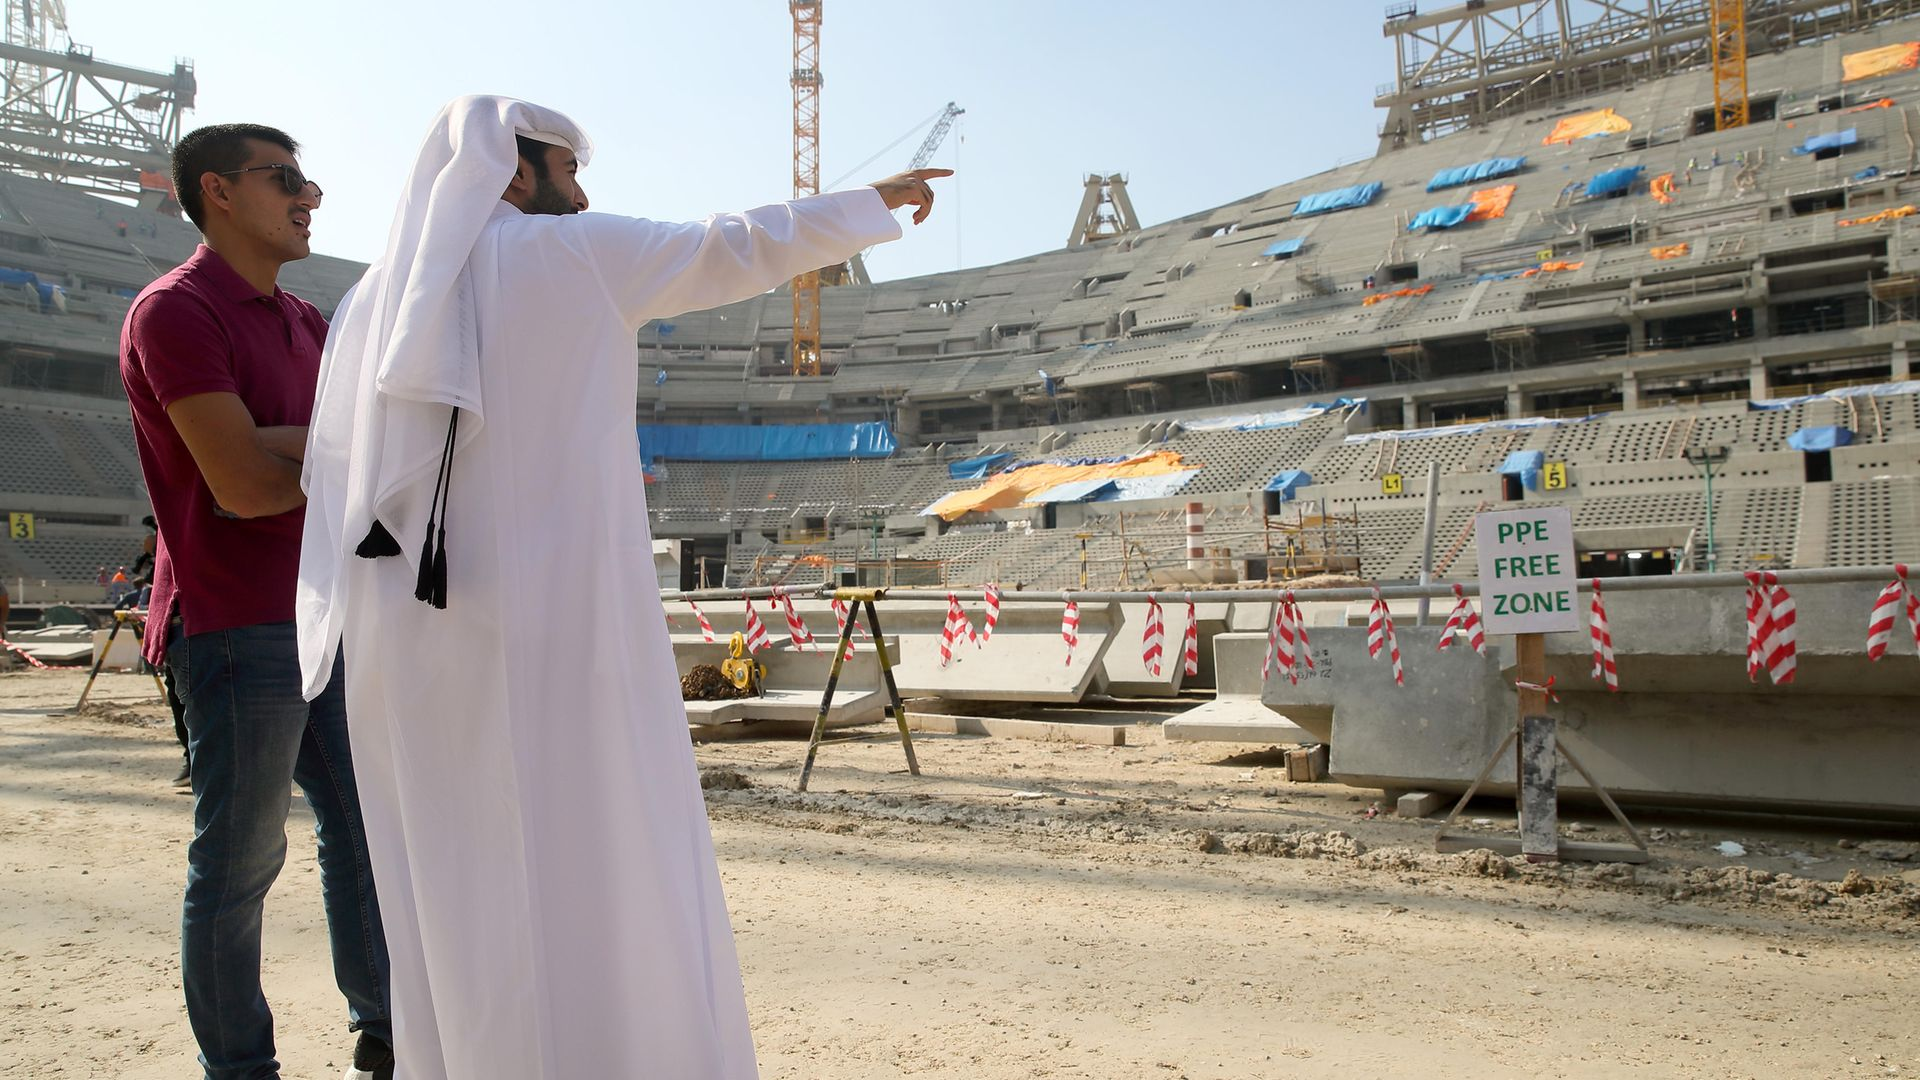 A general interior view of the construction of the Lusail Iconic Stadium in Doha, a venue for the FIFA Qatar World Cup 2022, on December 21, 2019 - Credit: Photo by Matthew Ashton - AMA/Getty Images